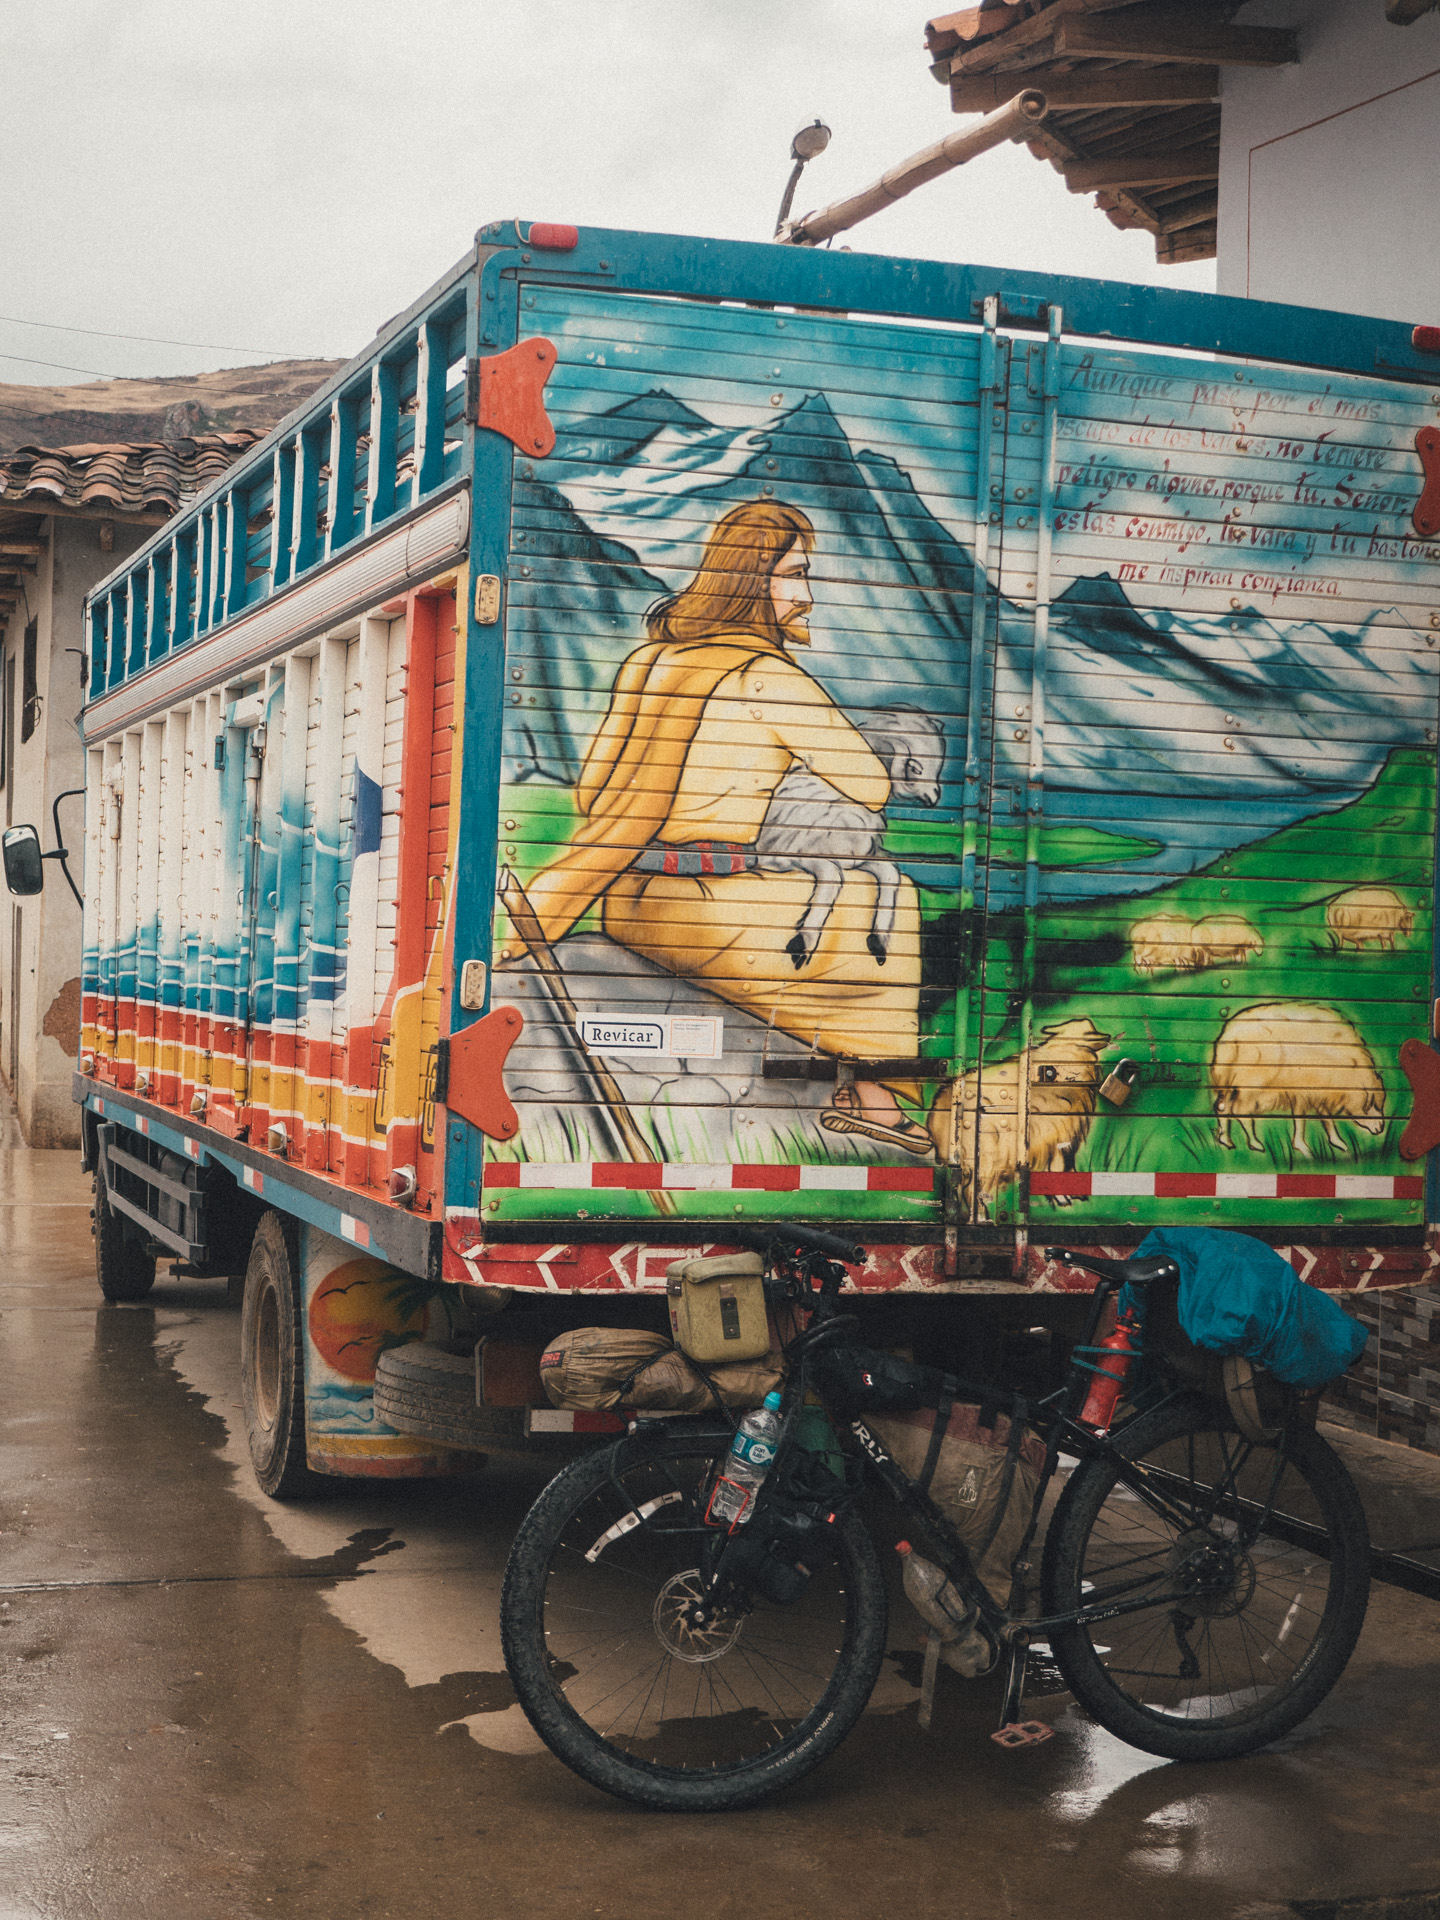 These trucks with Jesus drawings you see all over Peru.